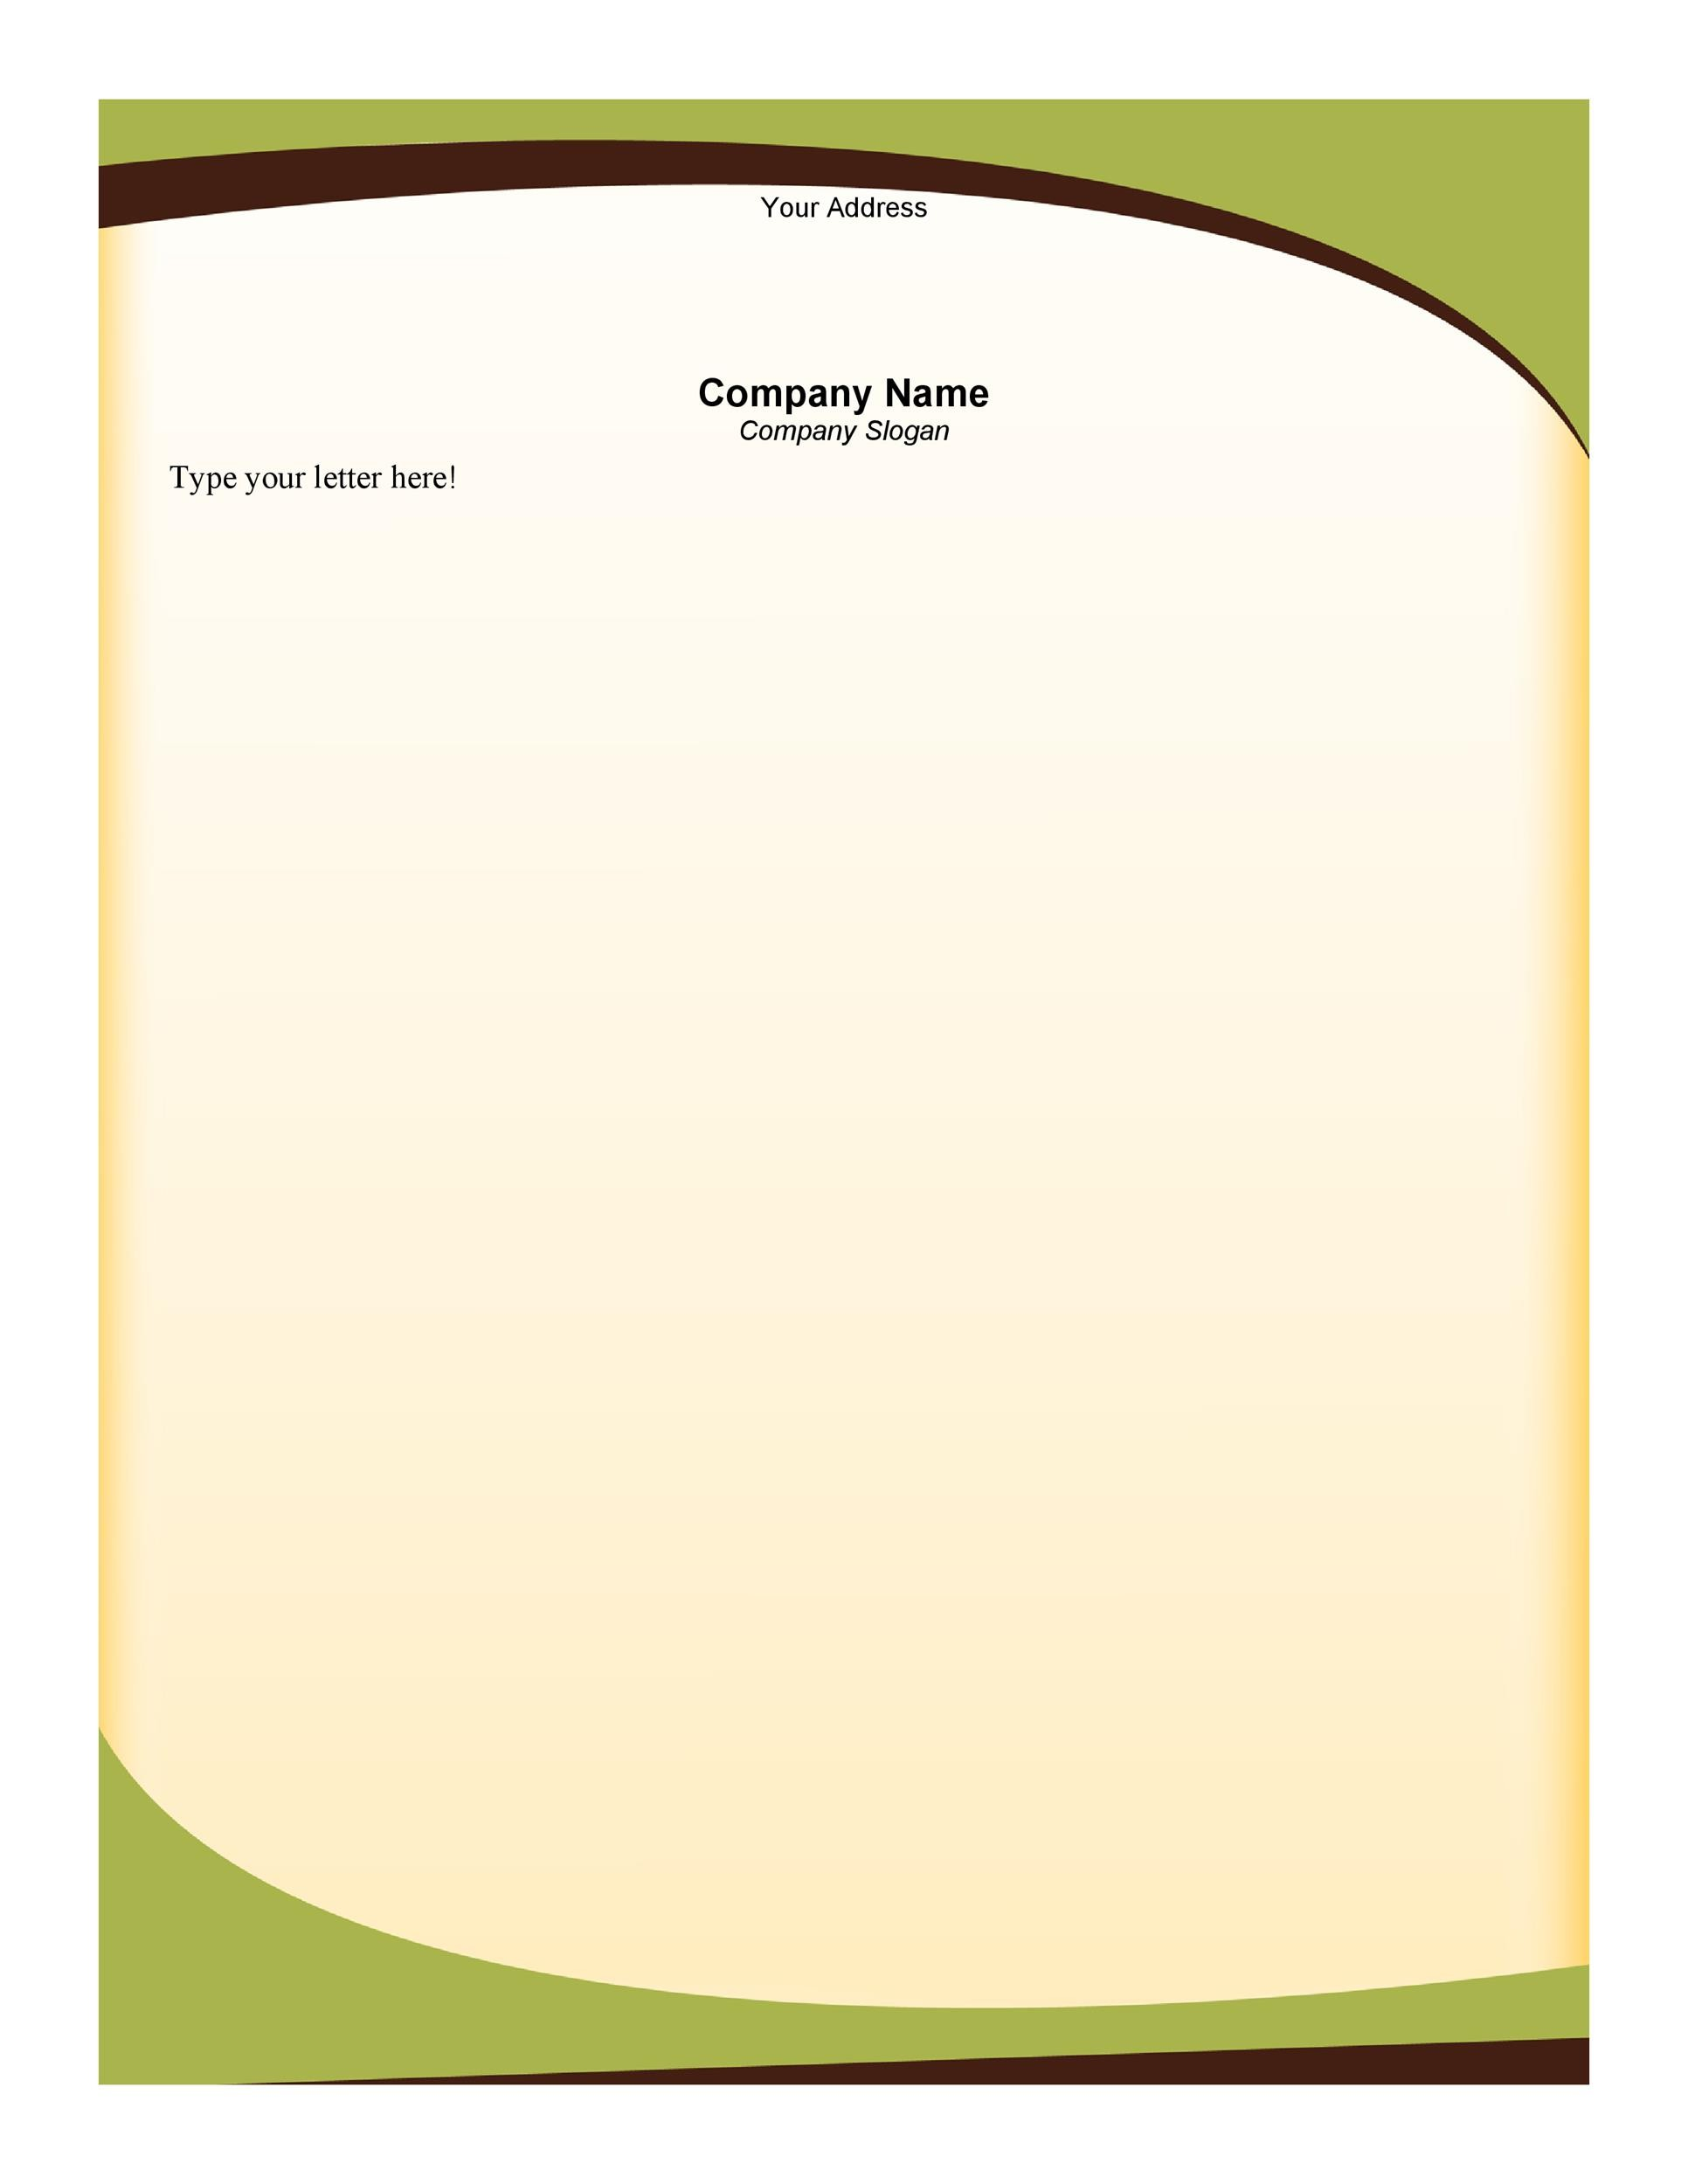 business letter template with letterhead